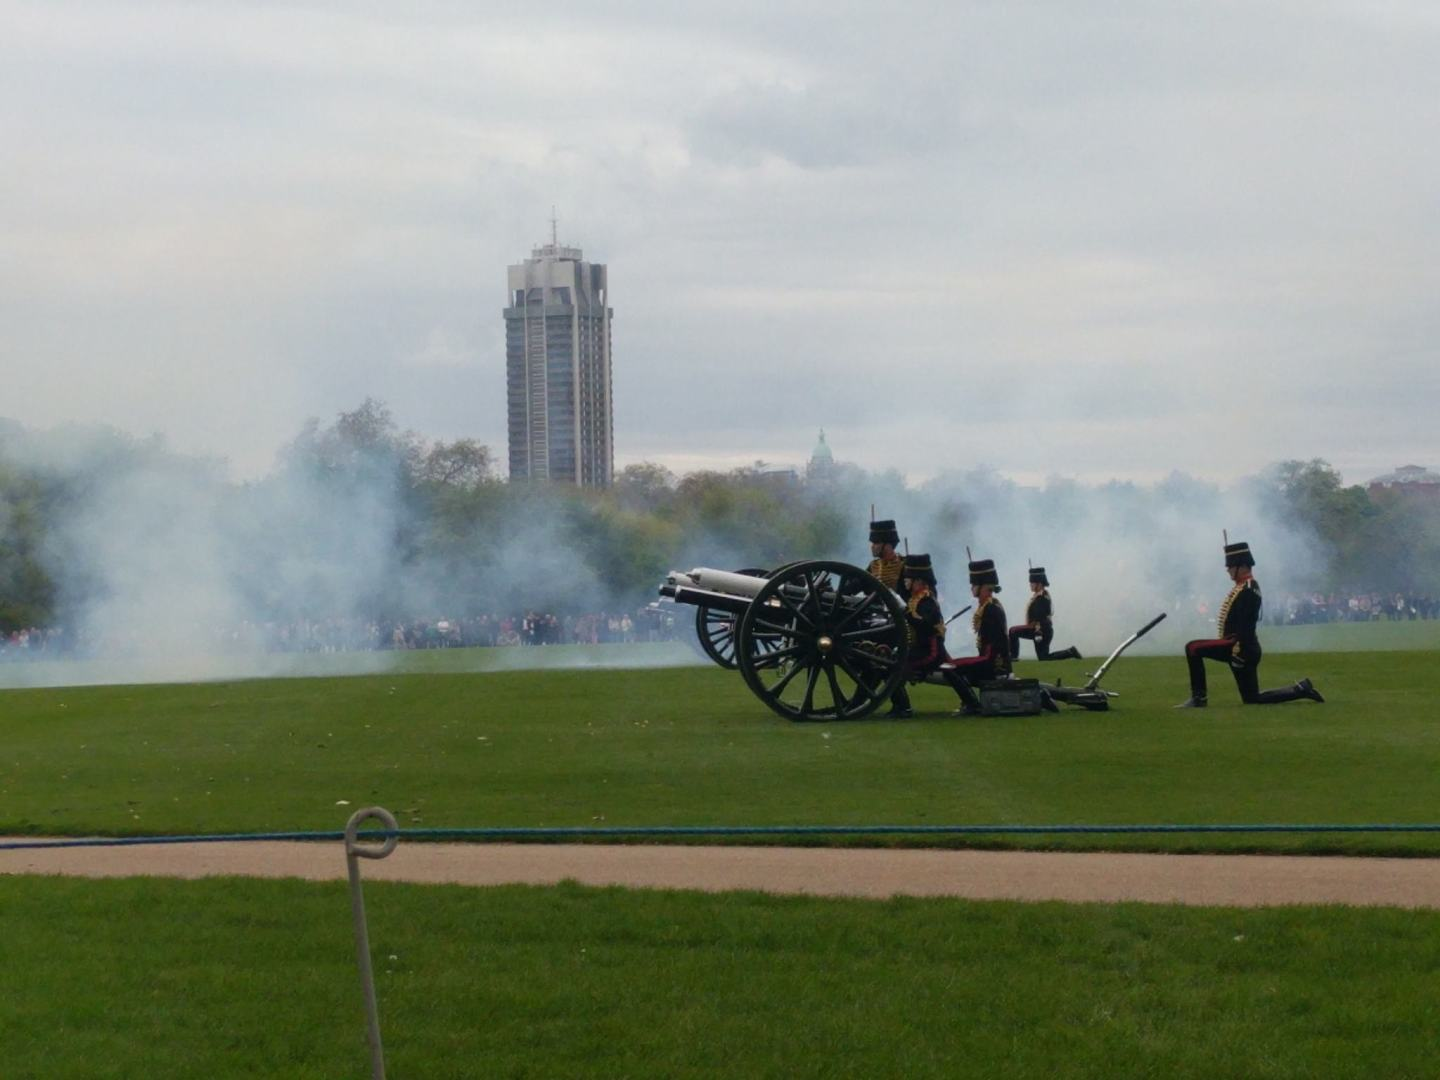 A gun salute marks the birth of a royal baby.